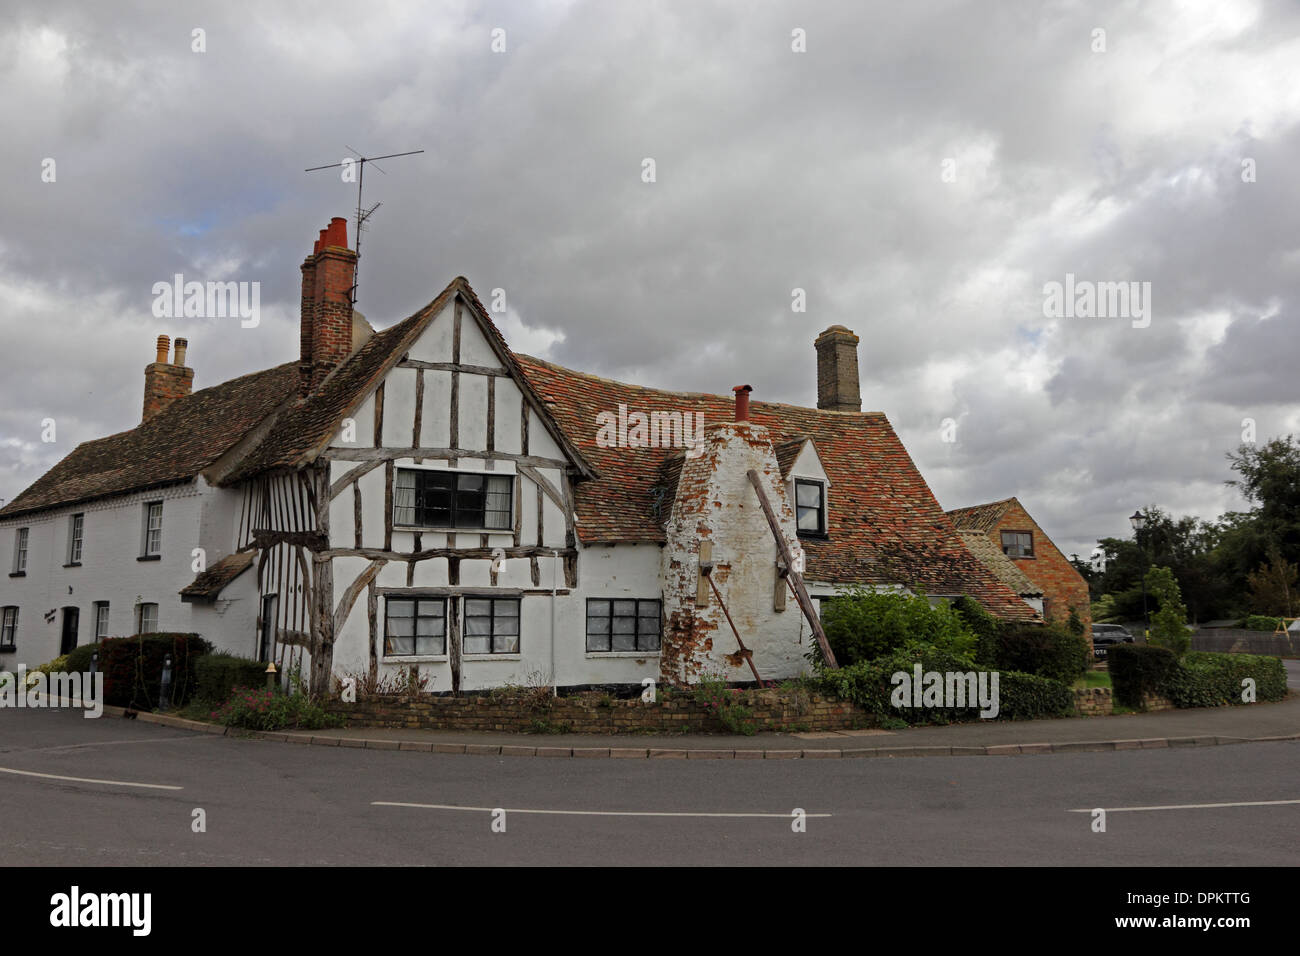 Tudor wood-framed house with structural problems - Stock Image